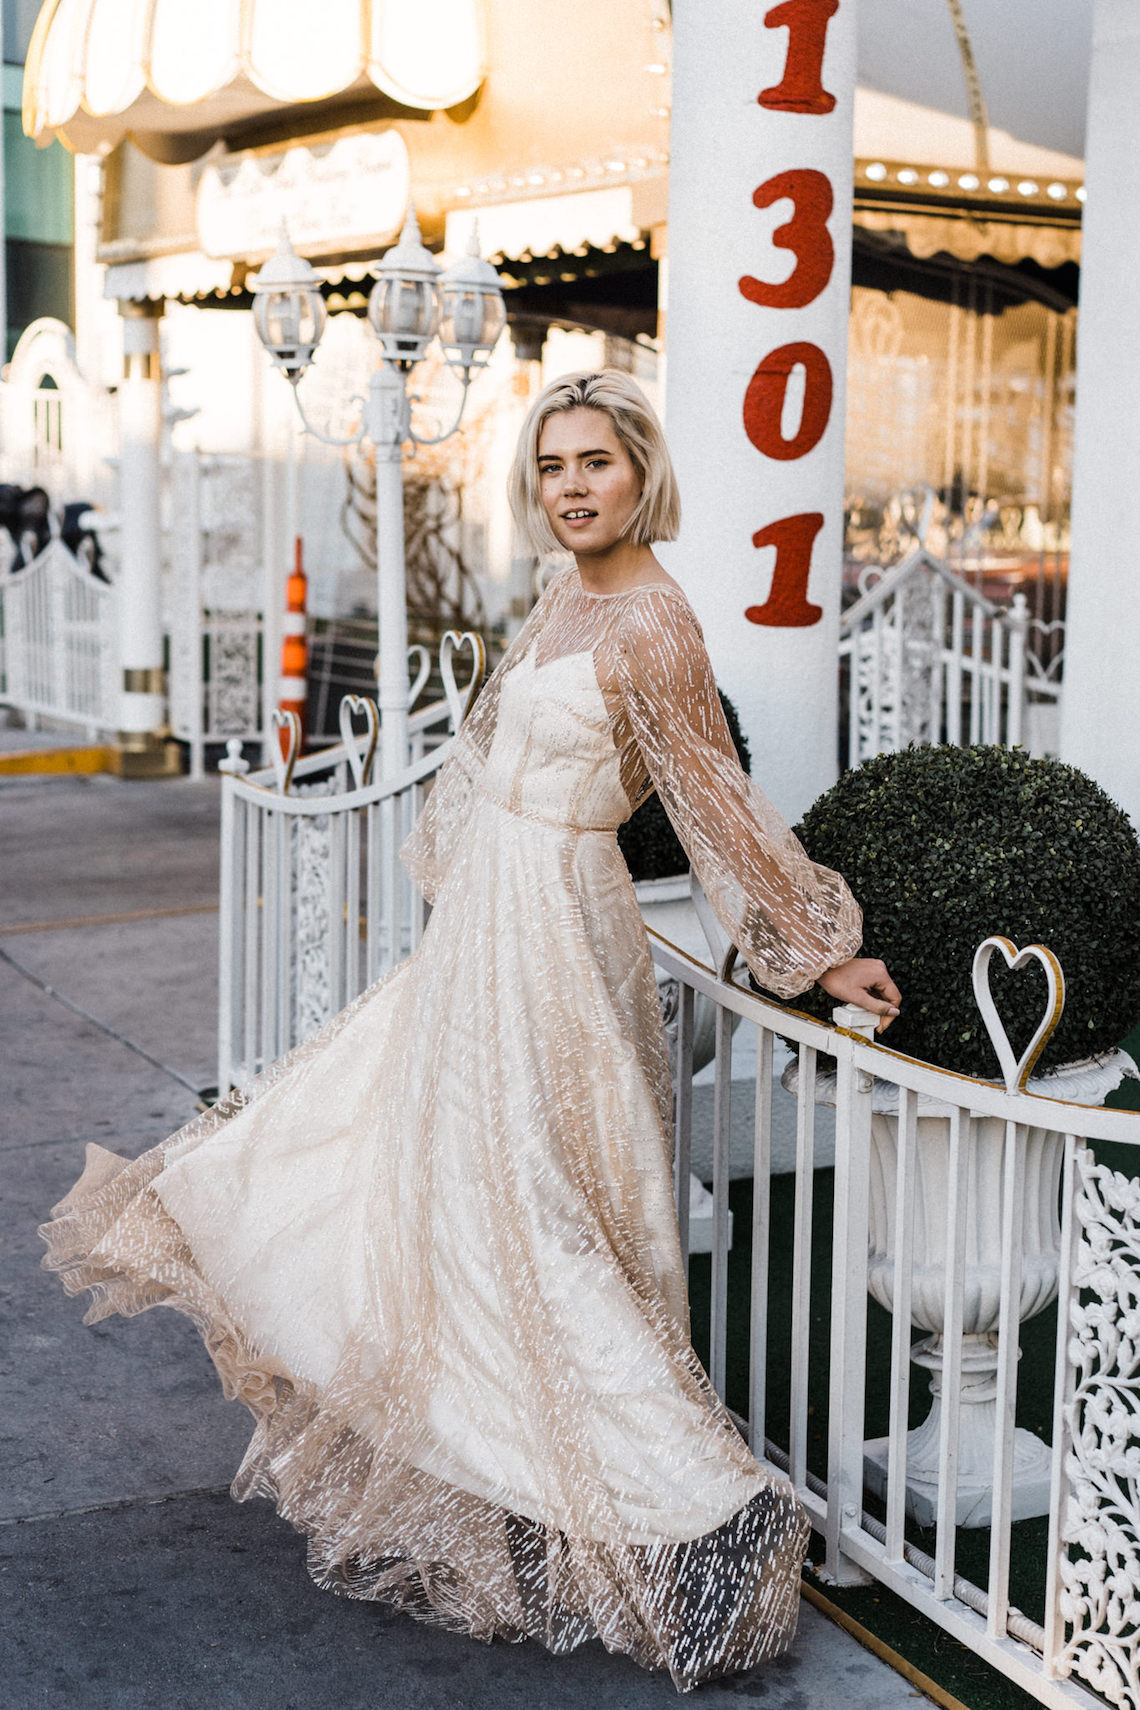 EandW Couture 2021 Summer Haze California Wedding Dress Collection for the Fun Cool Bride – Bridal Musings 66